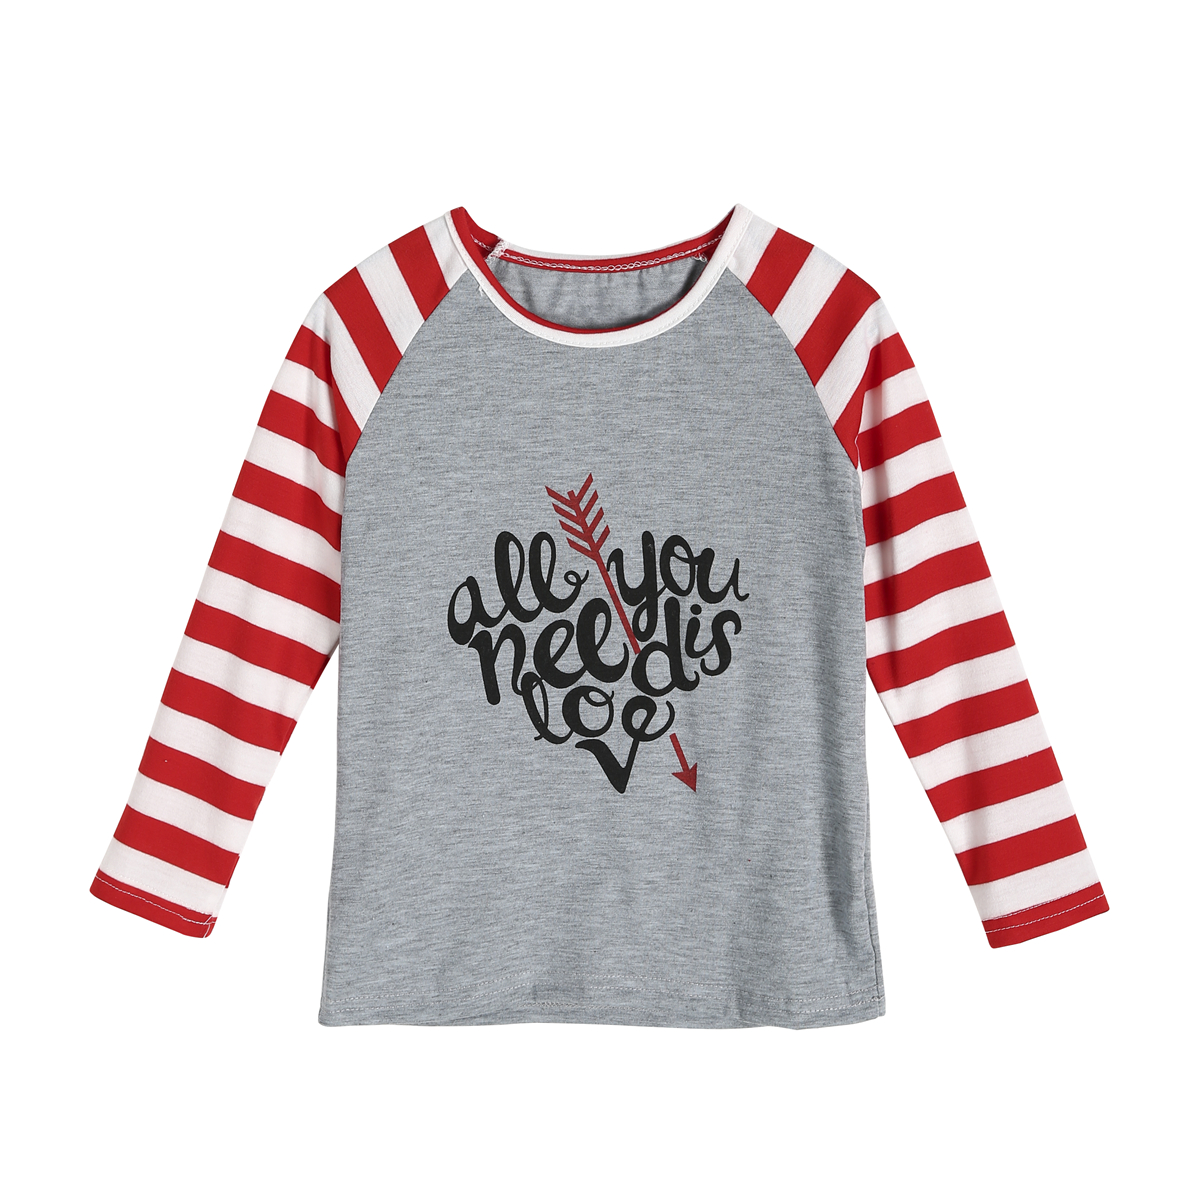 63158572ed 2019 Spring Couple T Shirt Mother Daughter Floral Matching Shirts Family  Clothes Love Valentine Striped Tee Tops Clothing-in Matching Family Outfits  from ...